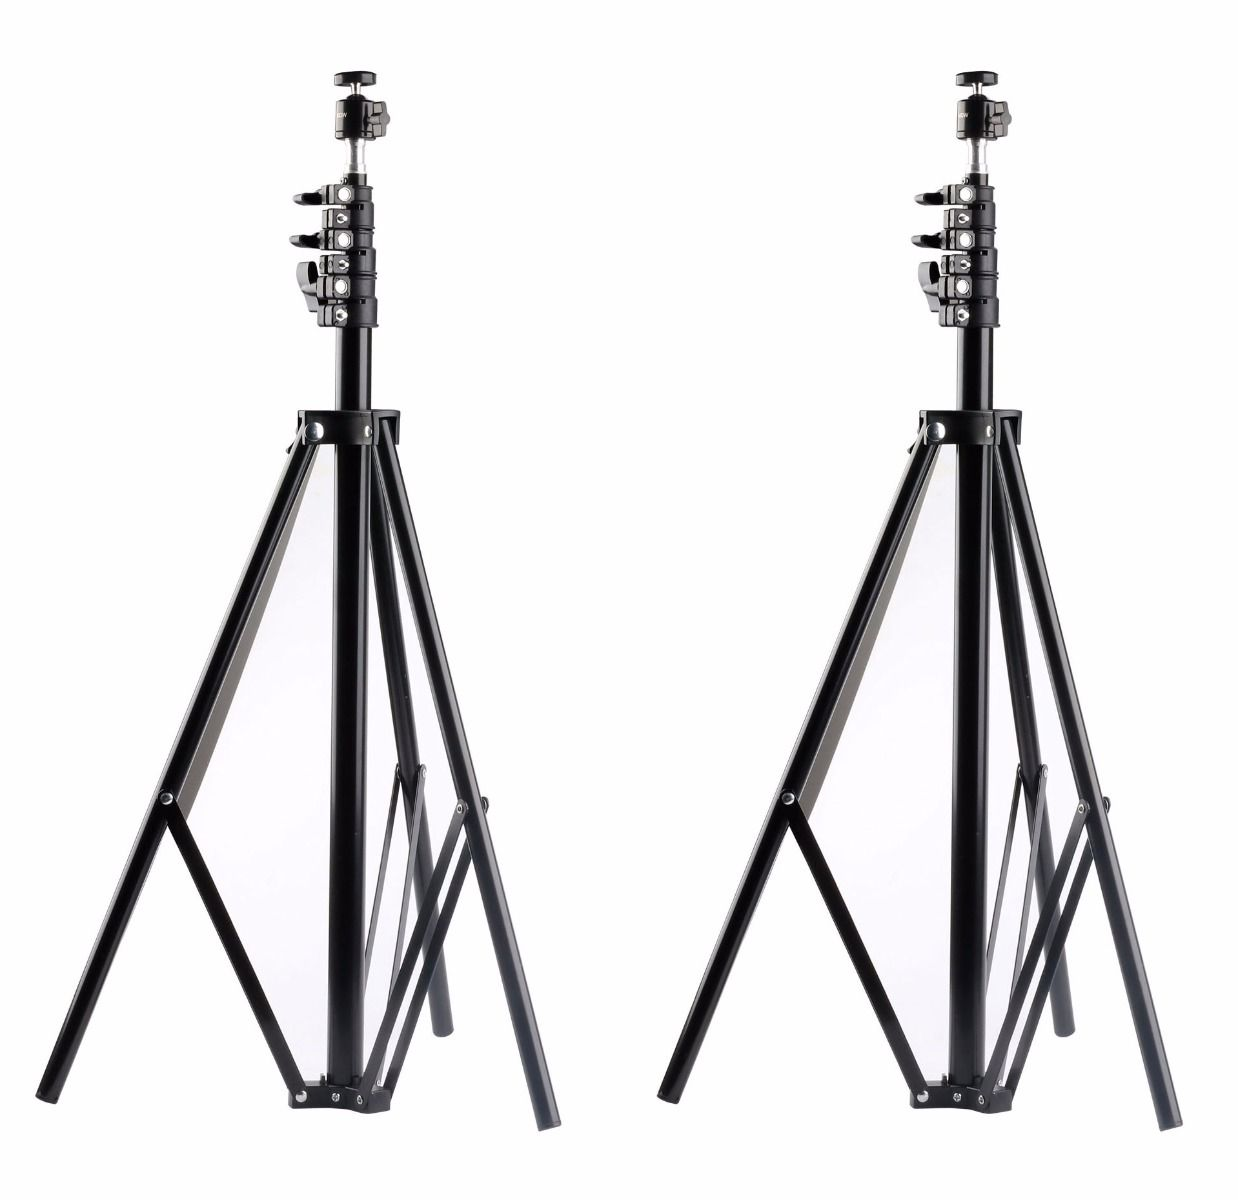 New Version 2 Packs 102 Inches 260centimeters Adjustable Light Stands With 1 4 Tripod Mini Ball